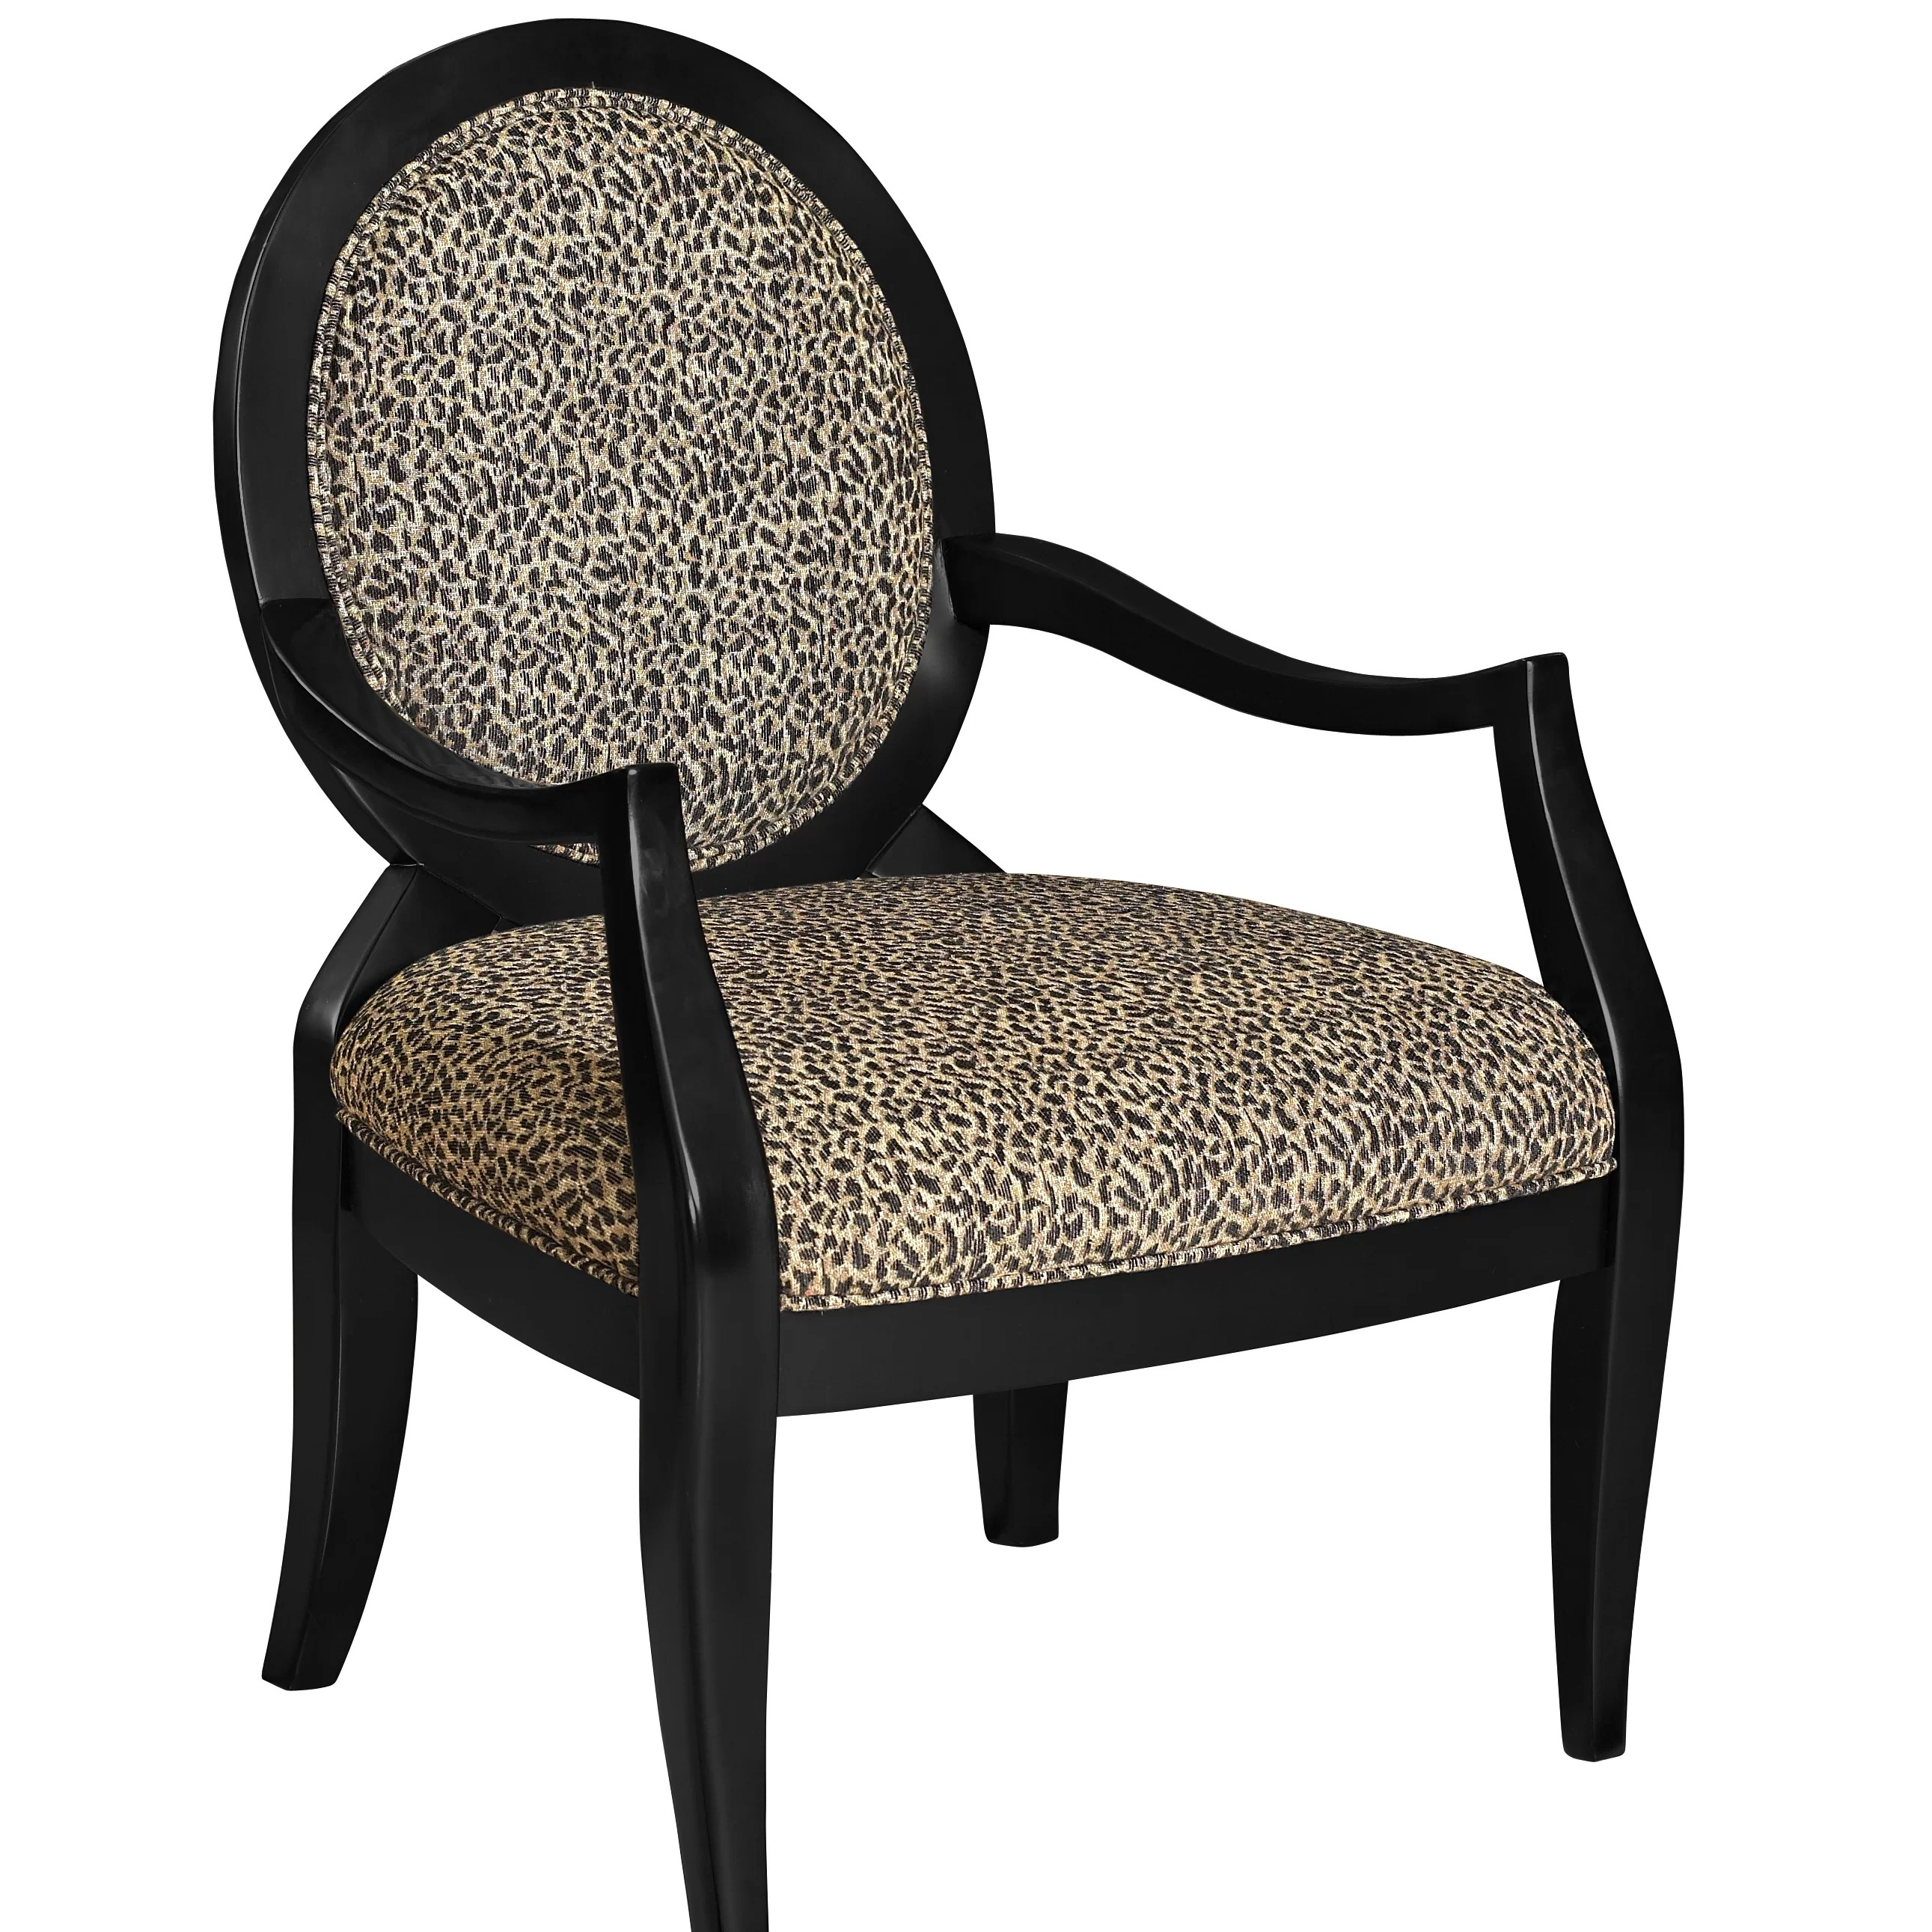 Cheetah Chair Powell Classic Seating Leopard Fabric Arm Chair And Reviews